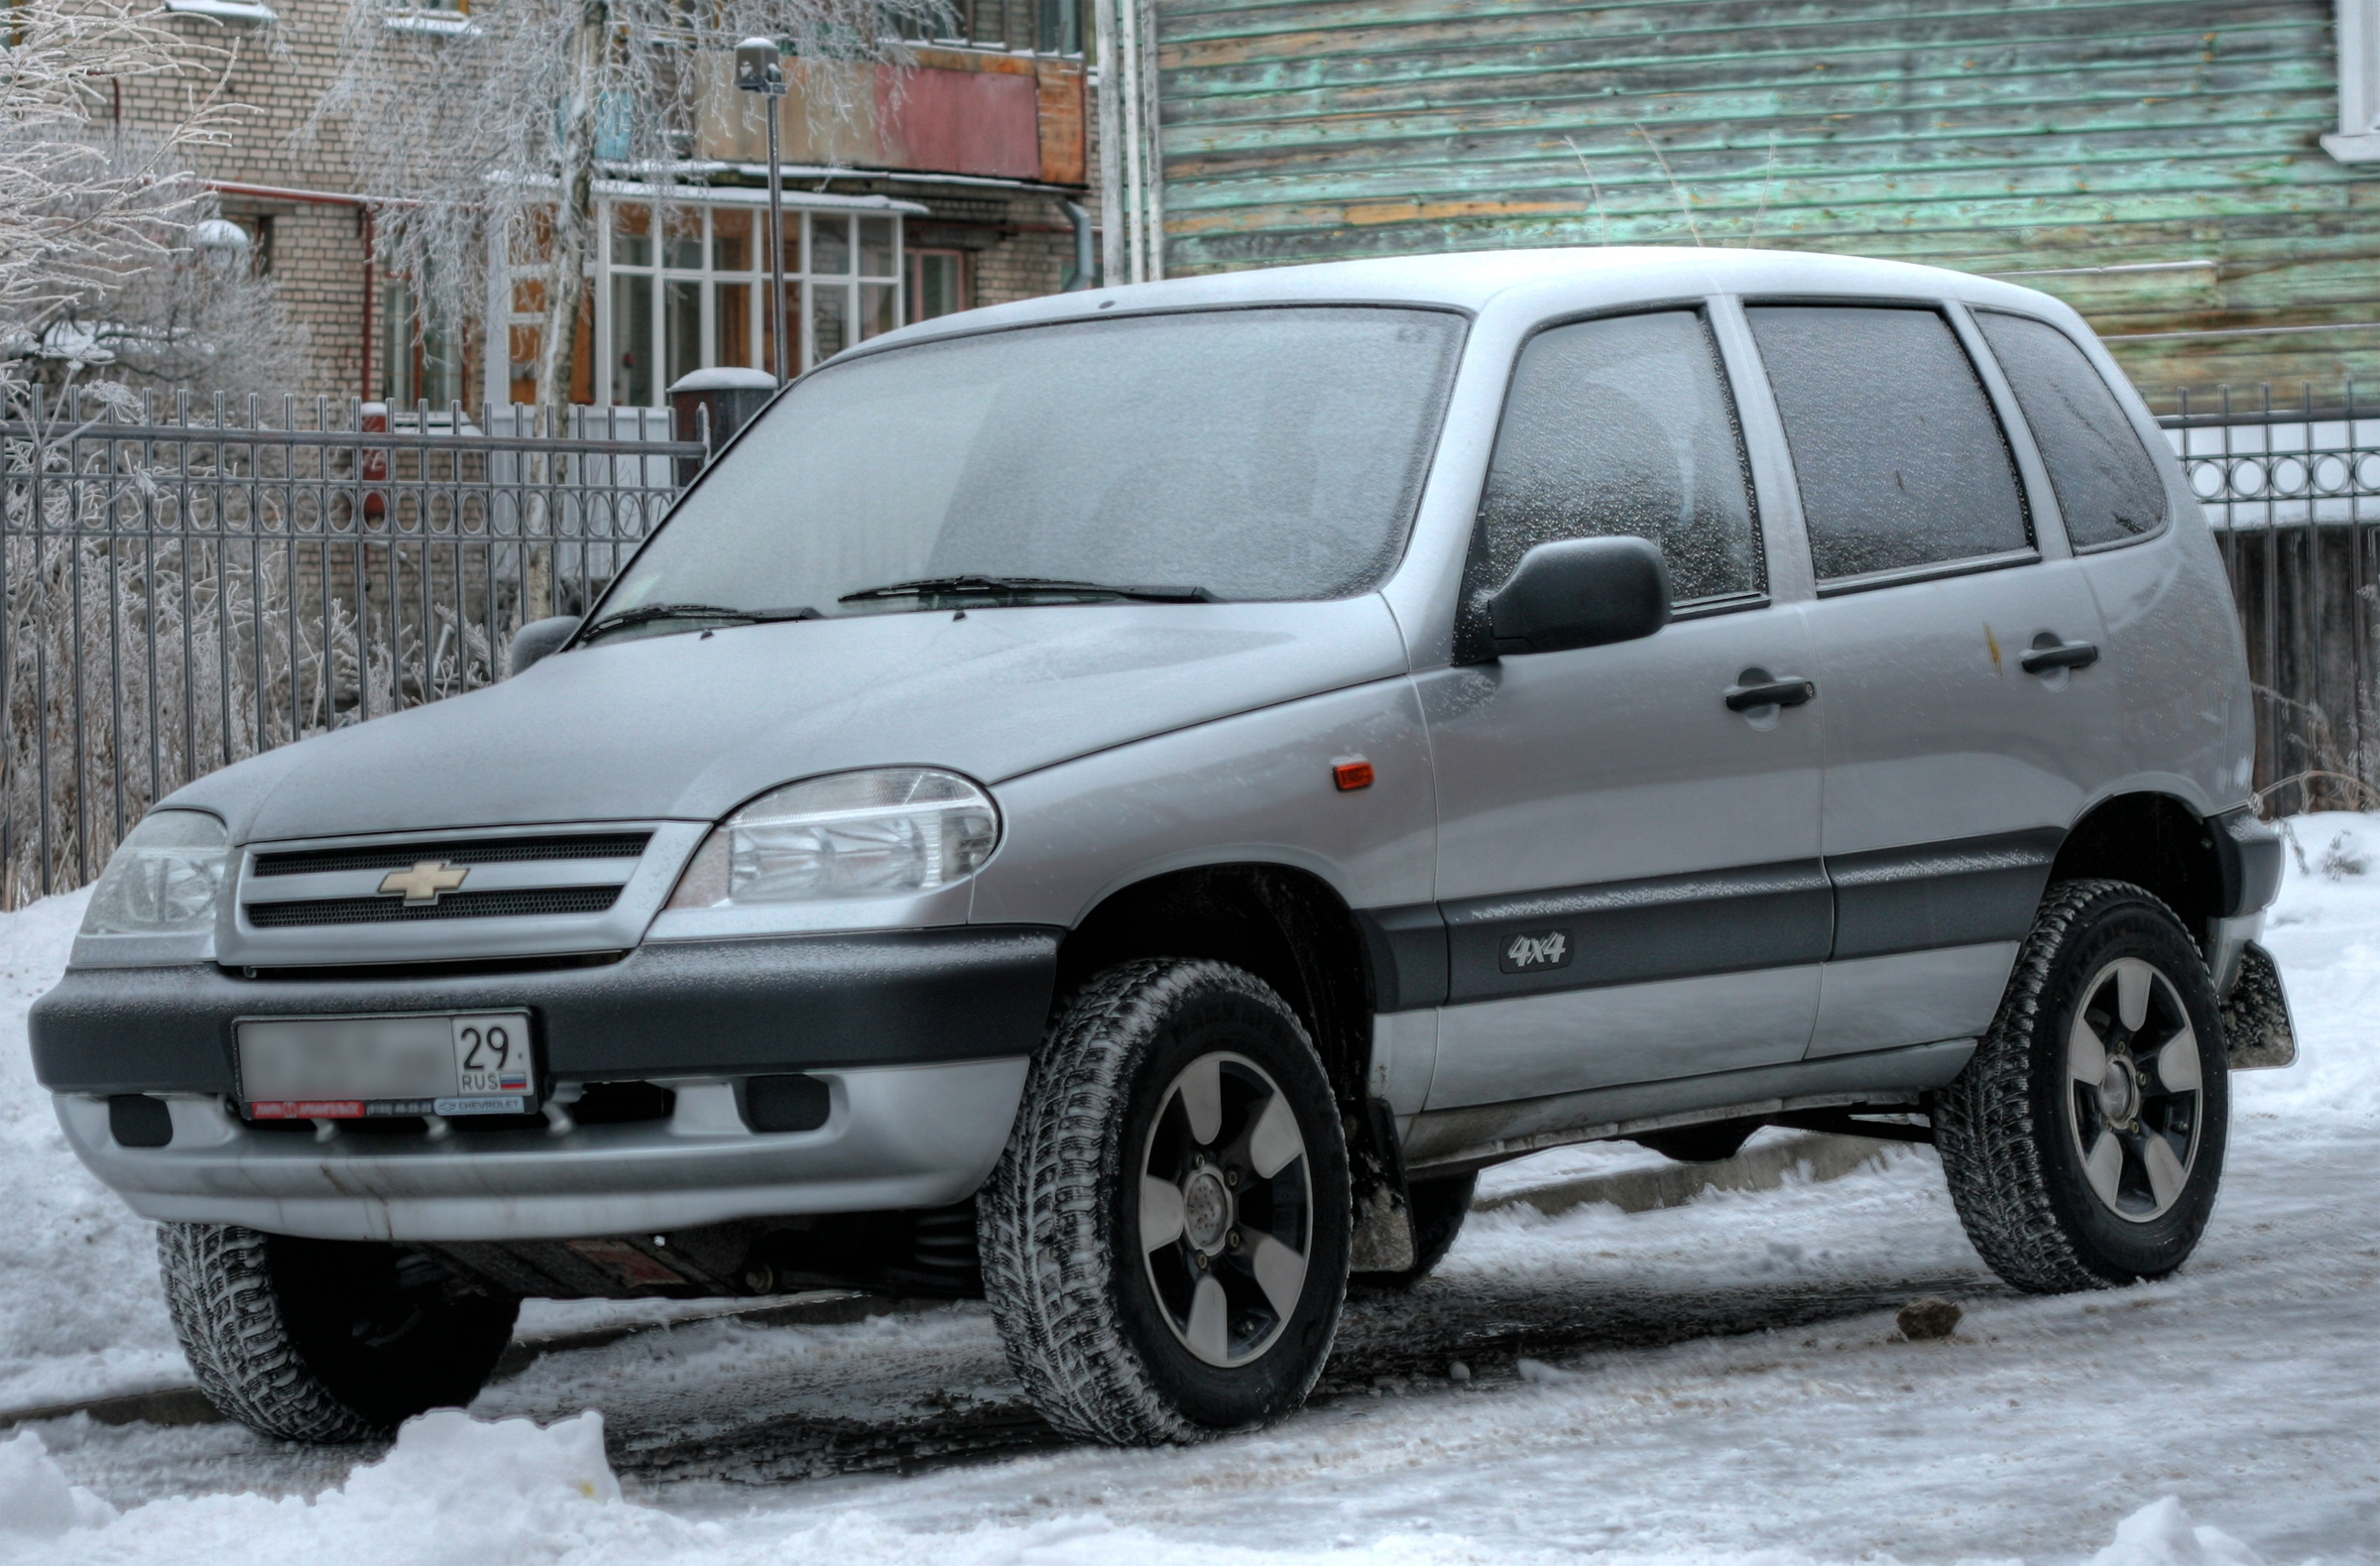 Chevrolet niva 2005 photo - 3